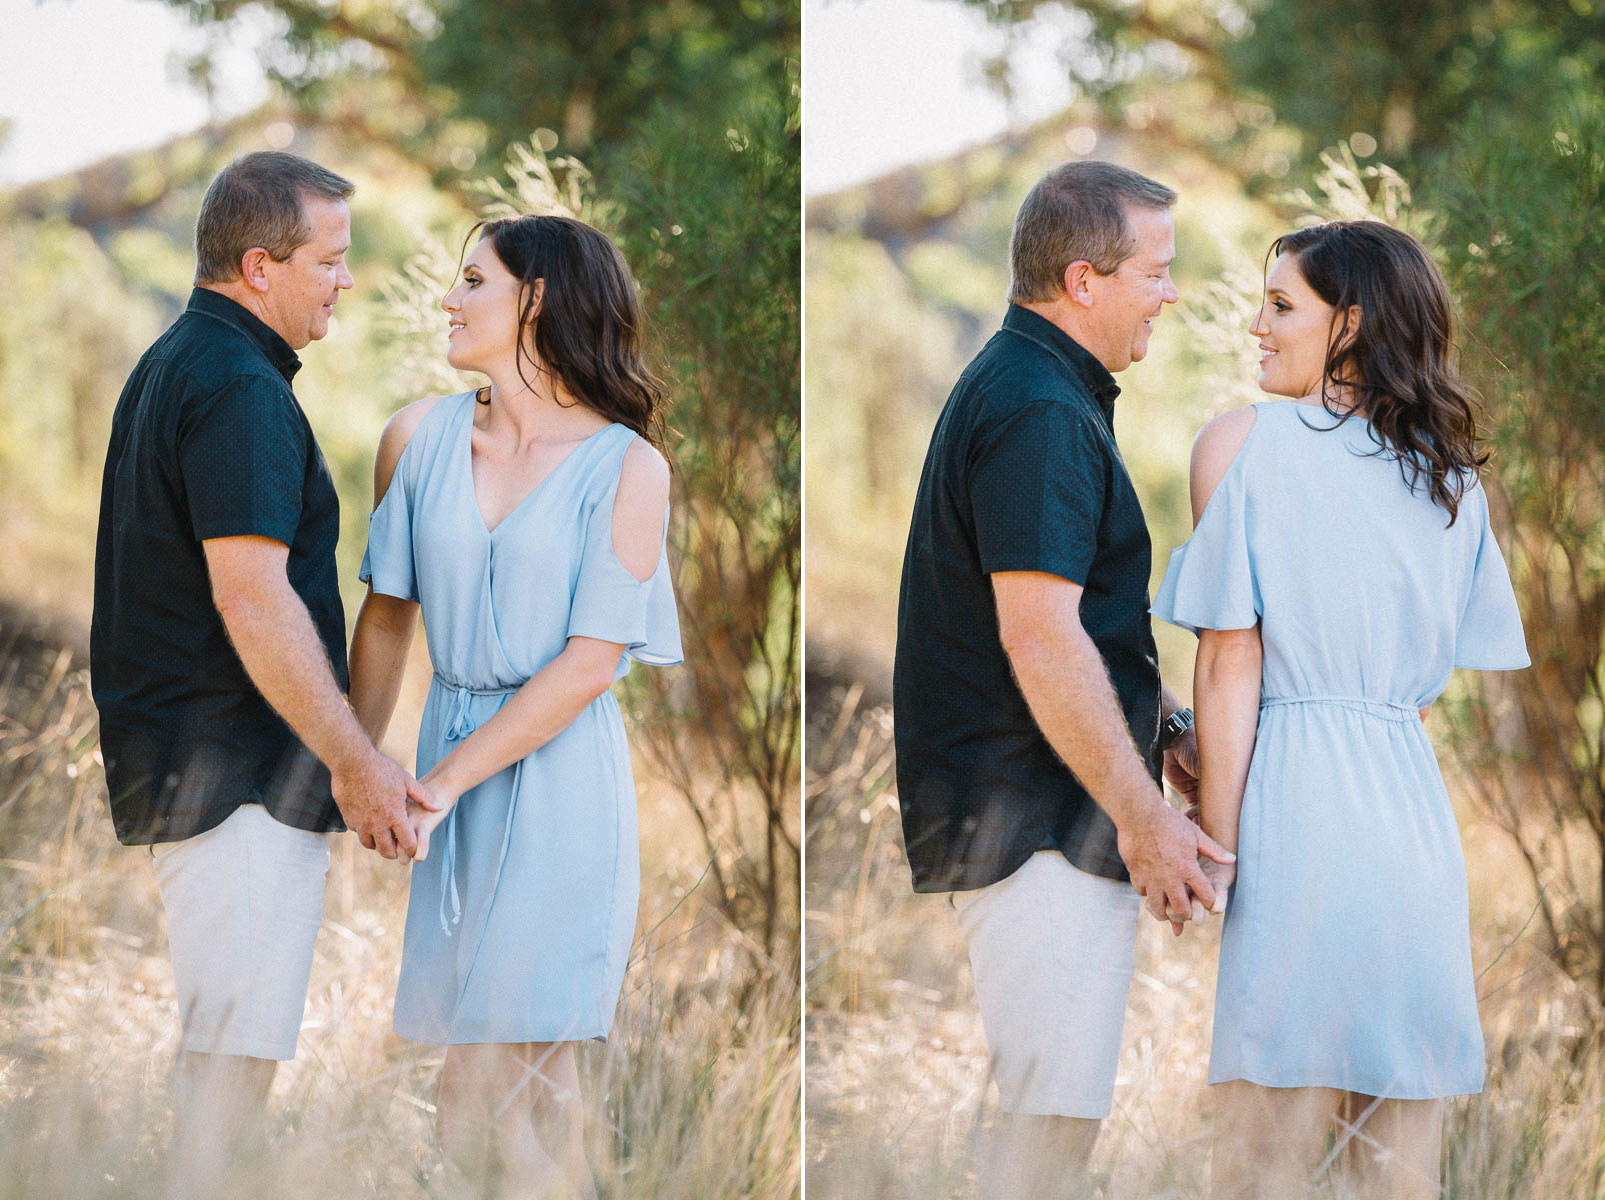 swan-valley-perth-engagement-photo-session-9.jpg